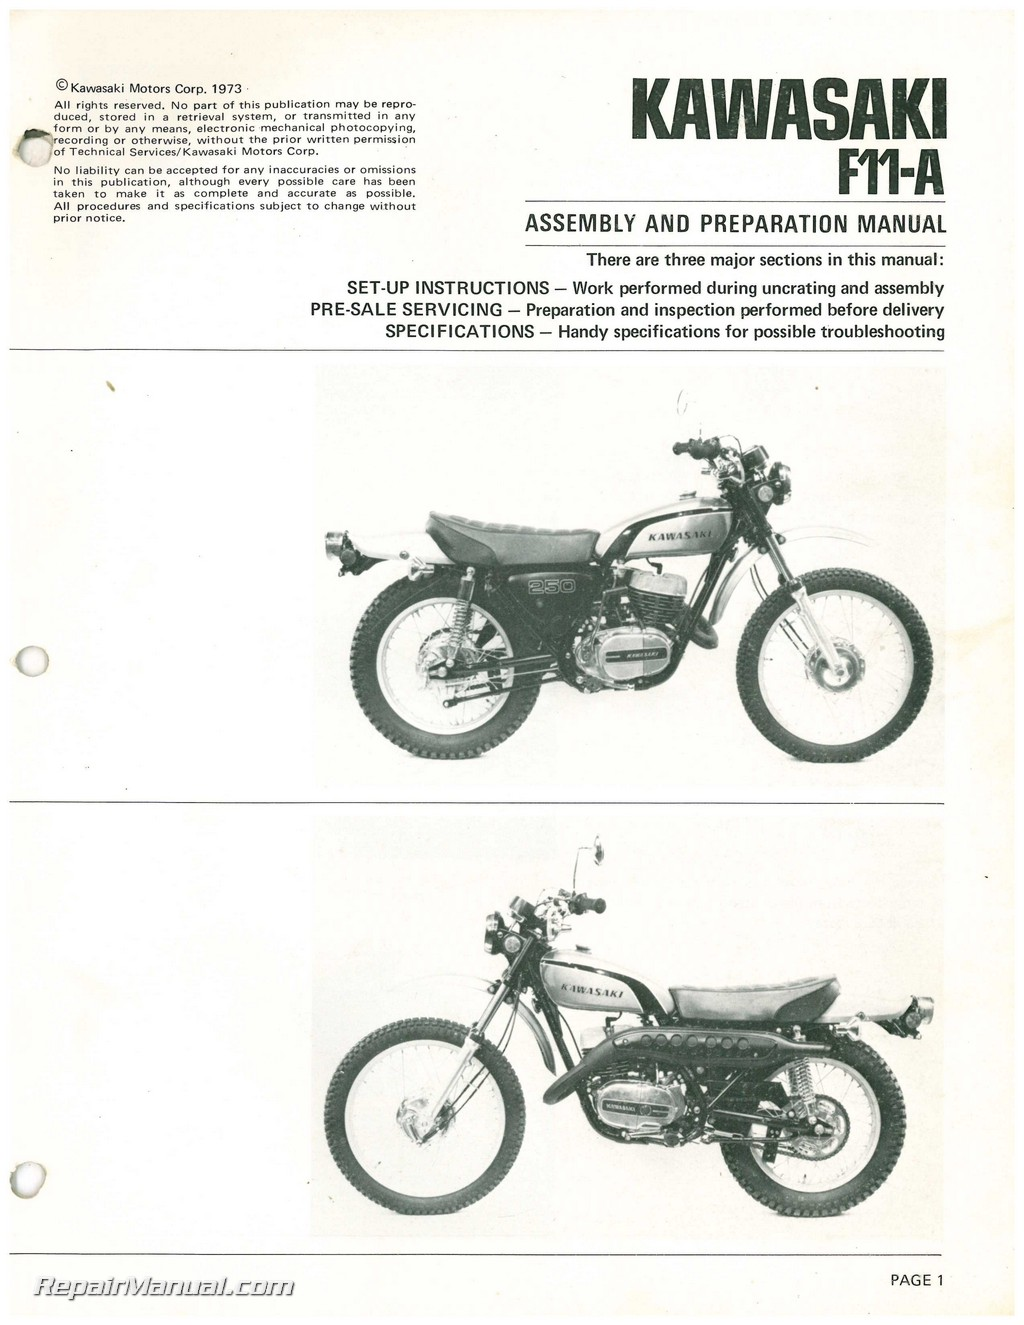 Kawasaki F11-A 250 Assembly and Preparation Manual